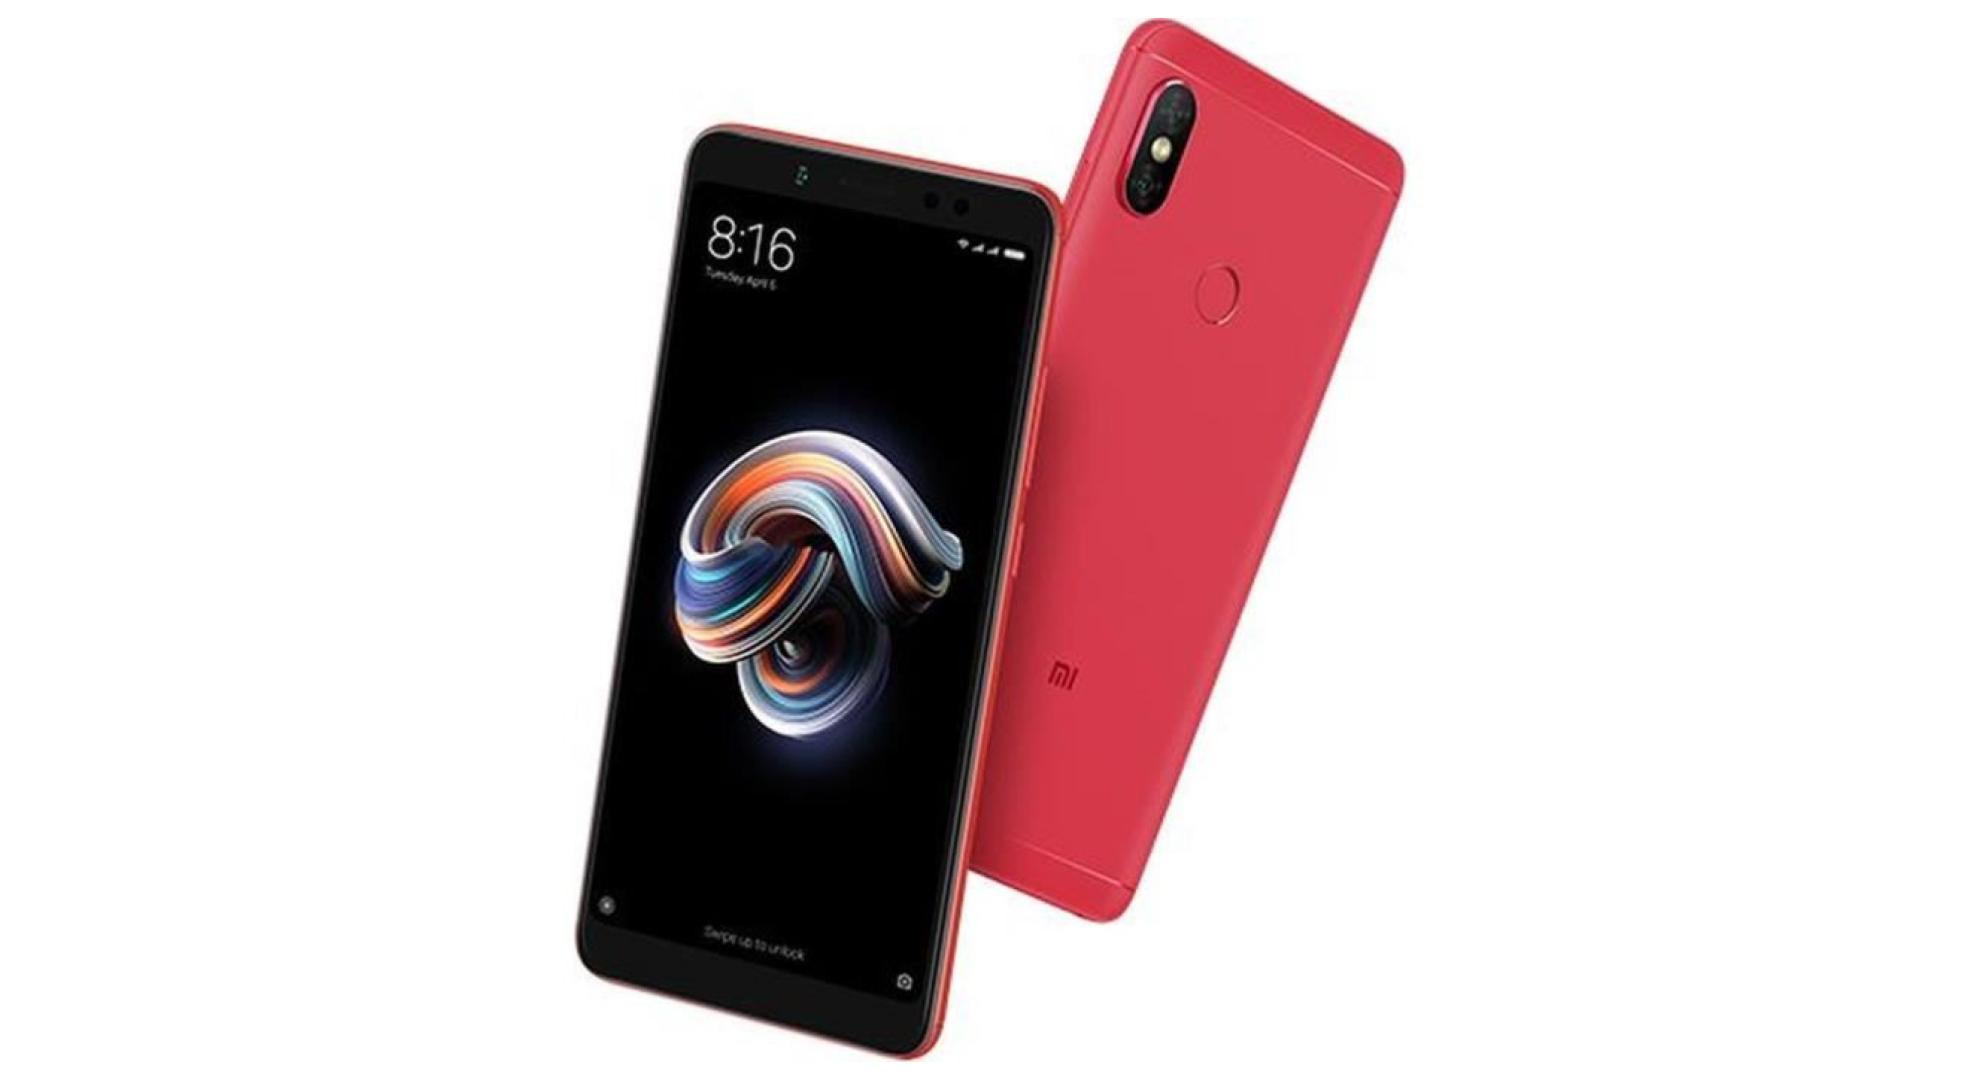 🔥 Déstockage : l'excellent Xiaomi Redmi Note 5 descend à 119 euros